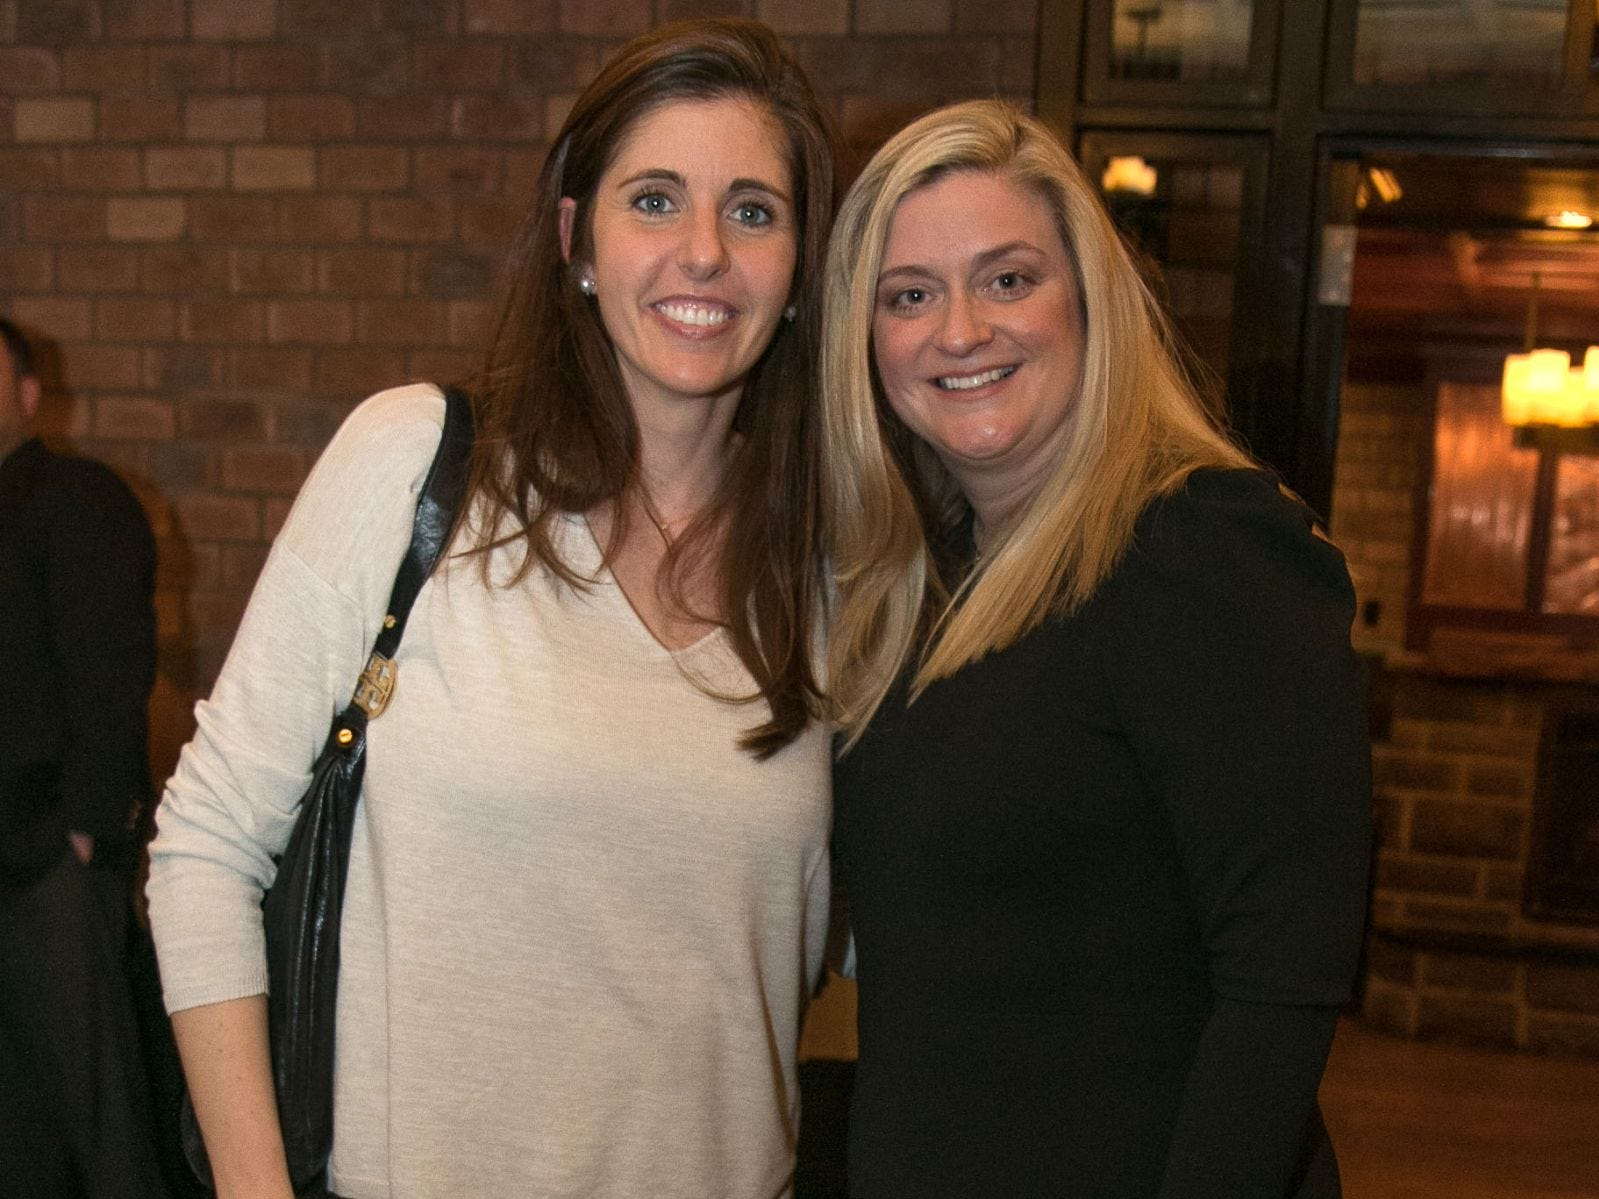 Kate Heighington, Christina Gibbons. Christina Gibbons of Special Properties held a cocktail reception to acknowledge her clients at Roots Steakhouse in Ridgewood. 02/07/2019